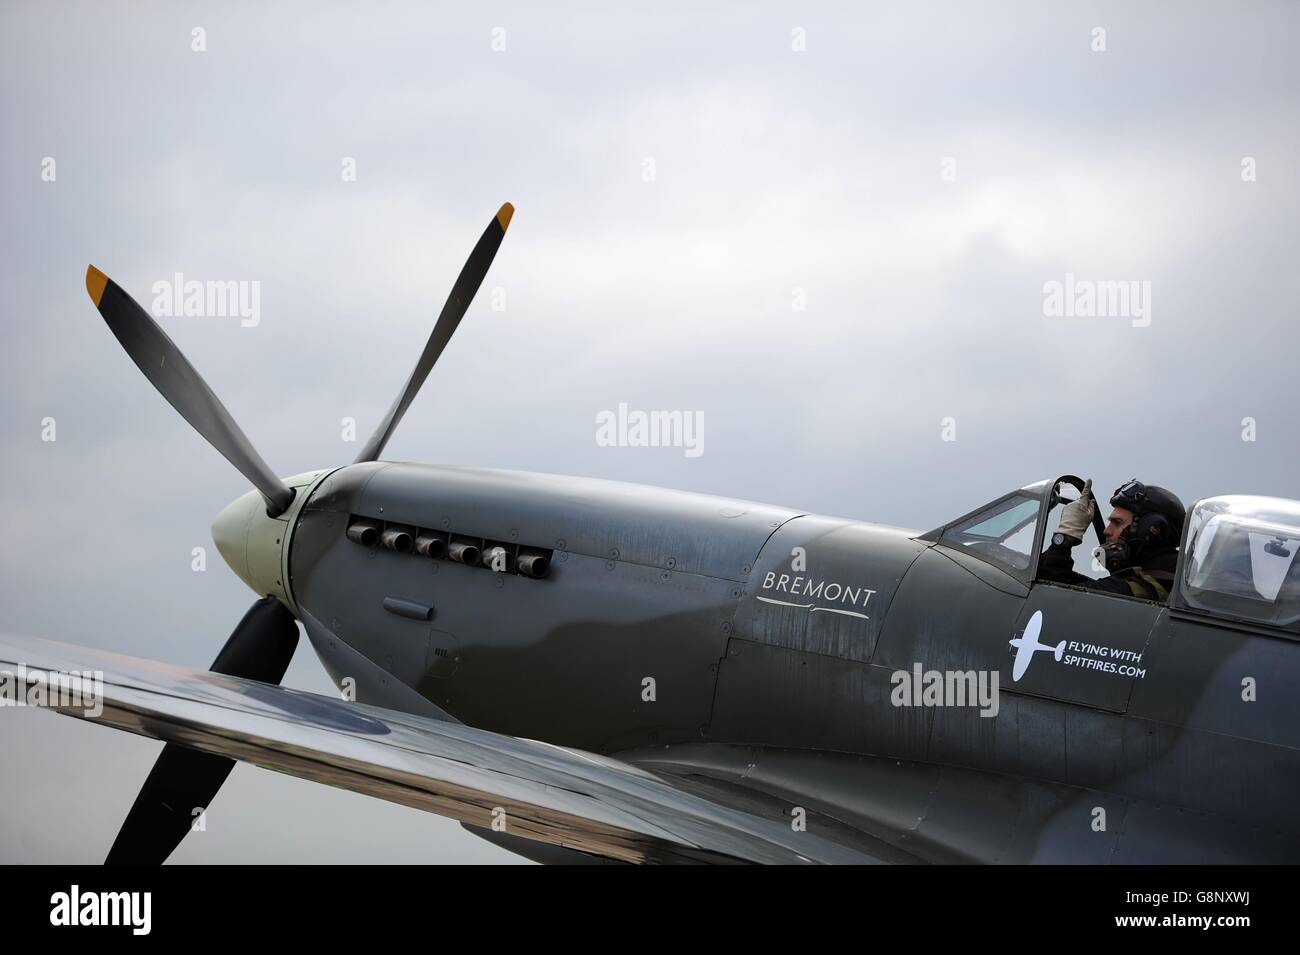 Spitfire 80th anniversary event at Southampton Airport - Stock Image